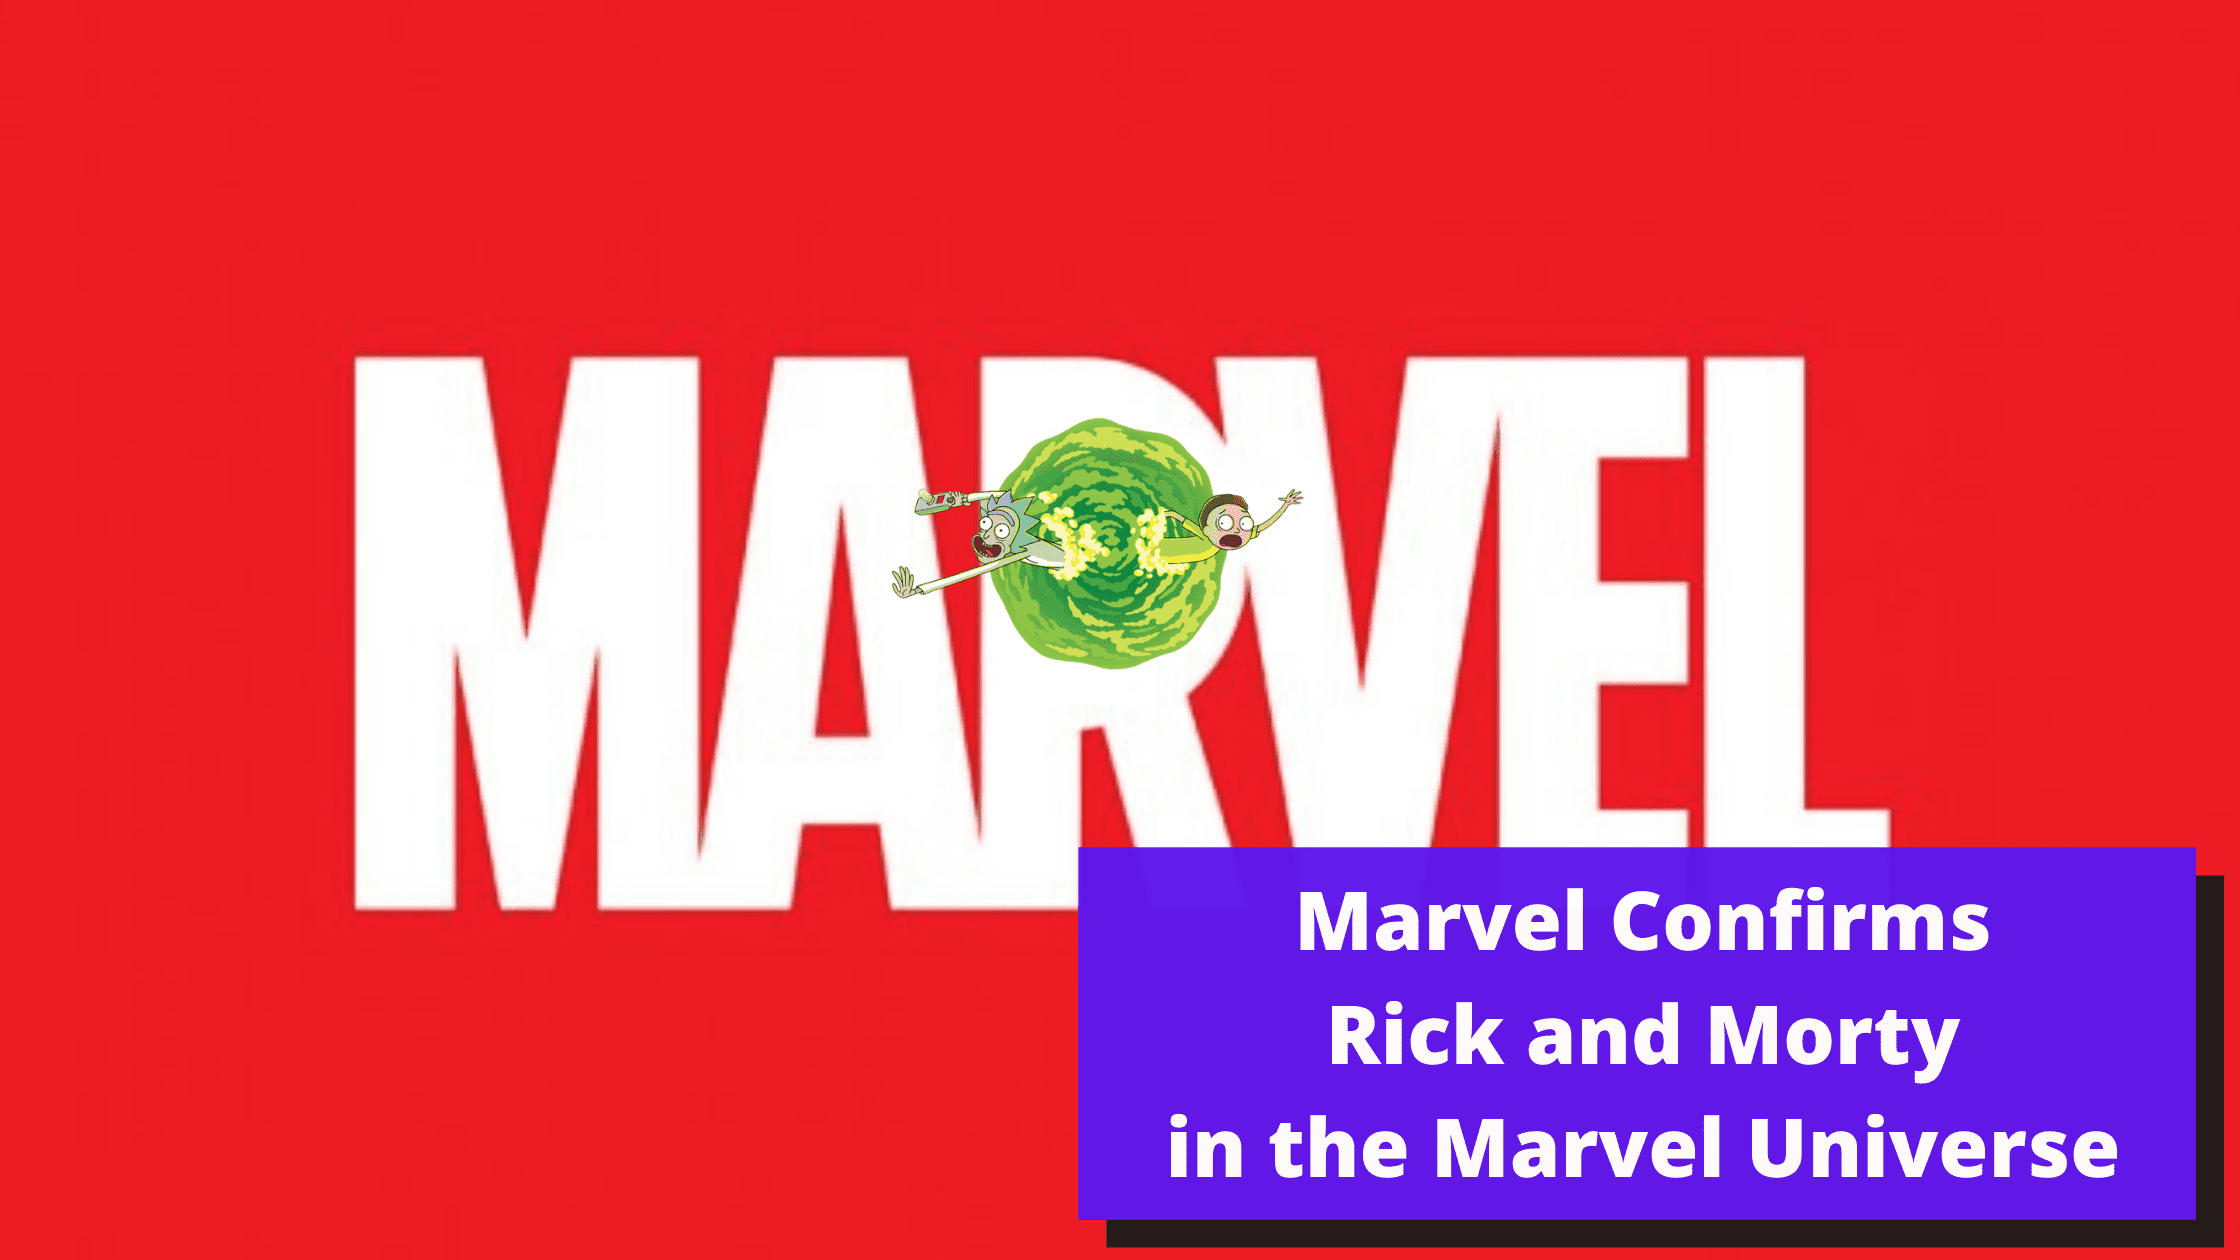 Marvel Confirms Rick and Morty in the Marvel Universe